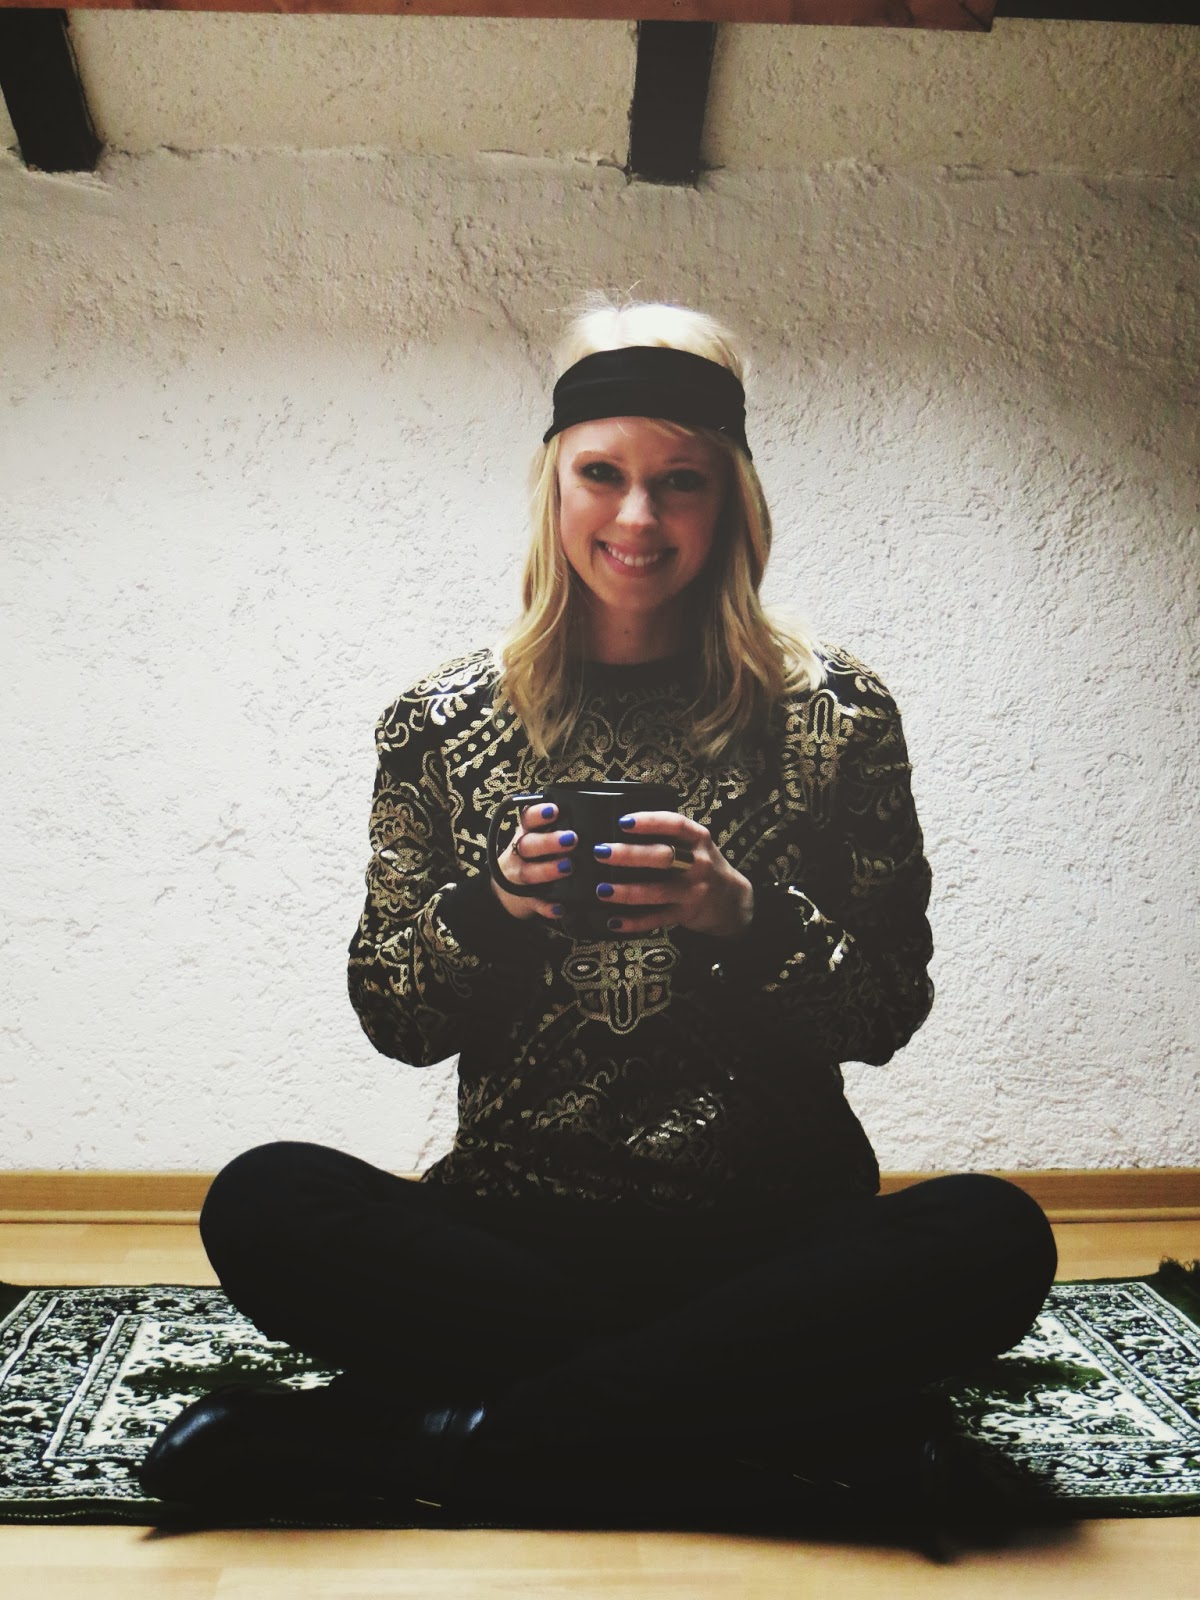 ChicWish Baroque sequins sweater, Charlotte Russe boots, Indigo Bananas cobalt nail polish, style blogger, outfit ideas, hippie chic, bohemian